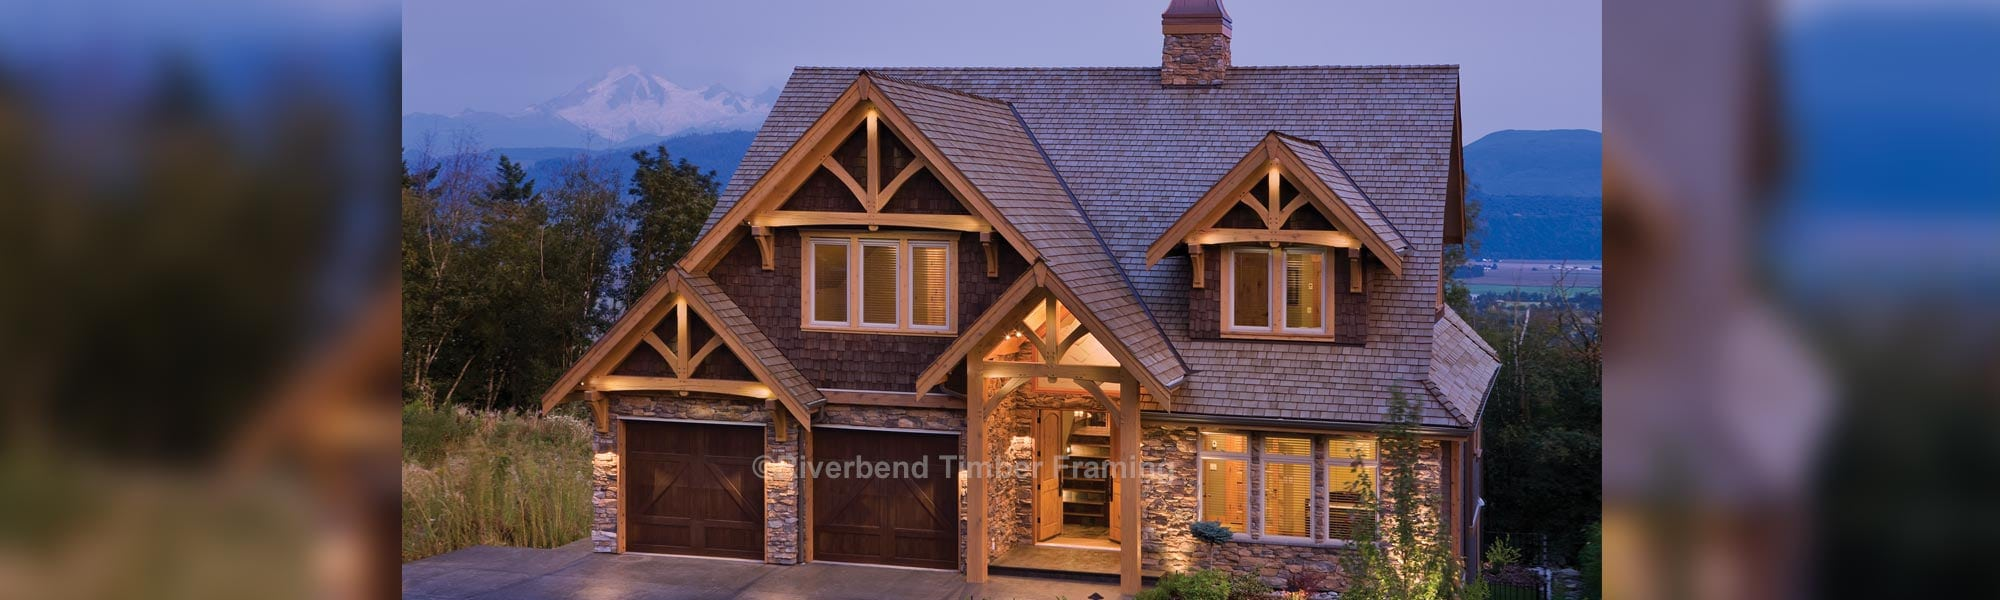 Americas Number 1 Timber Frame Home Builder Riverbend Timber Framing